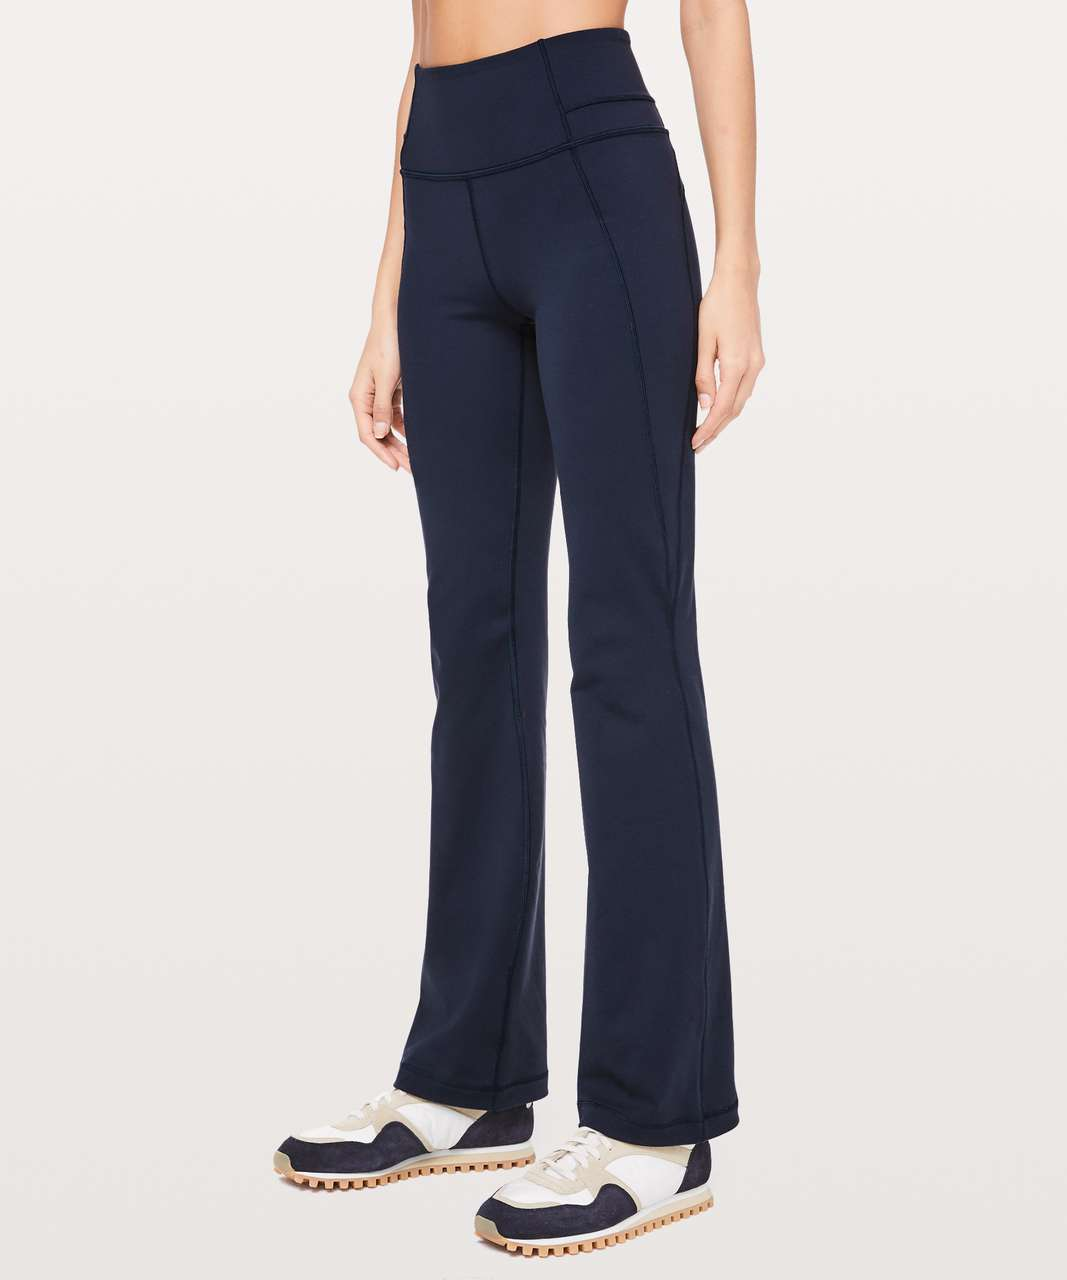 "Lululemon Groove Pant Bootcut 32"" - True Navy (First Release)"